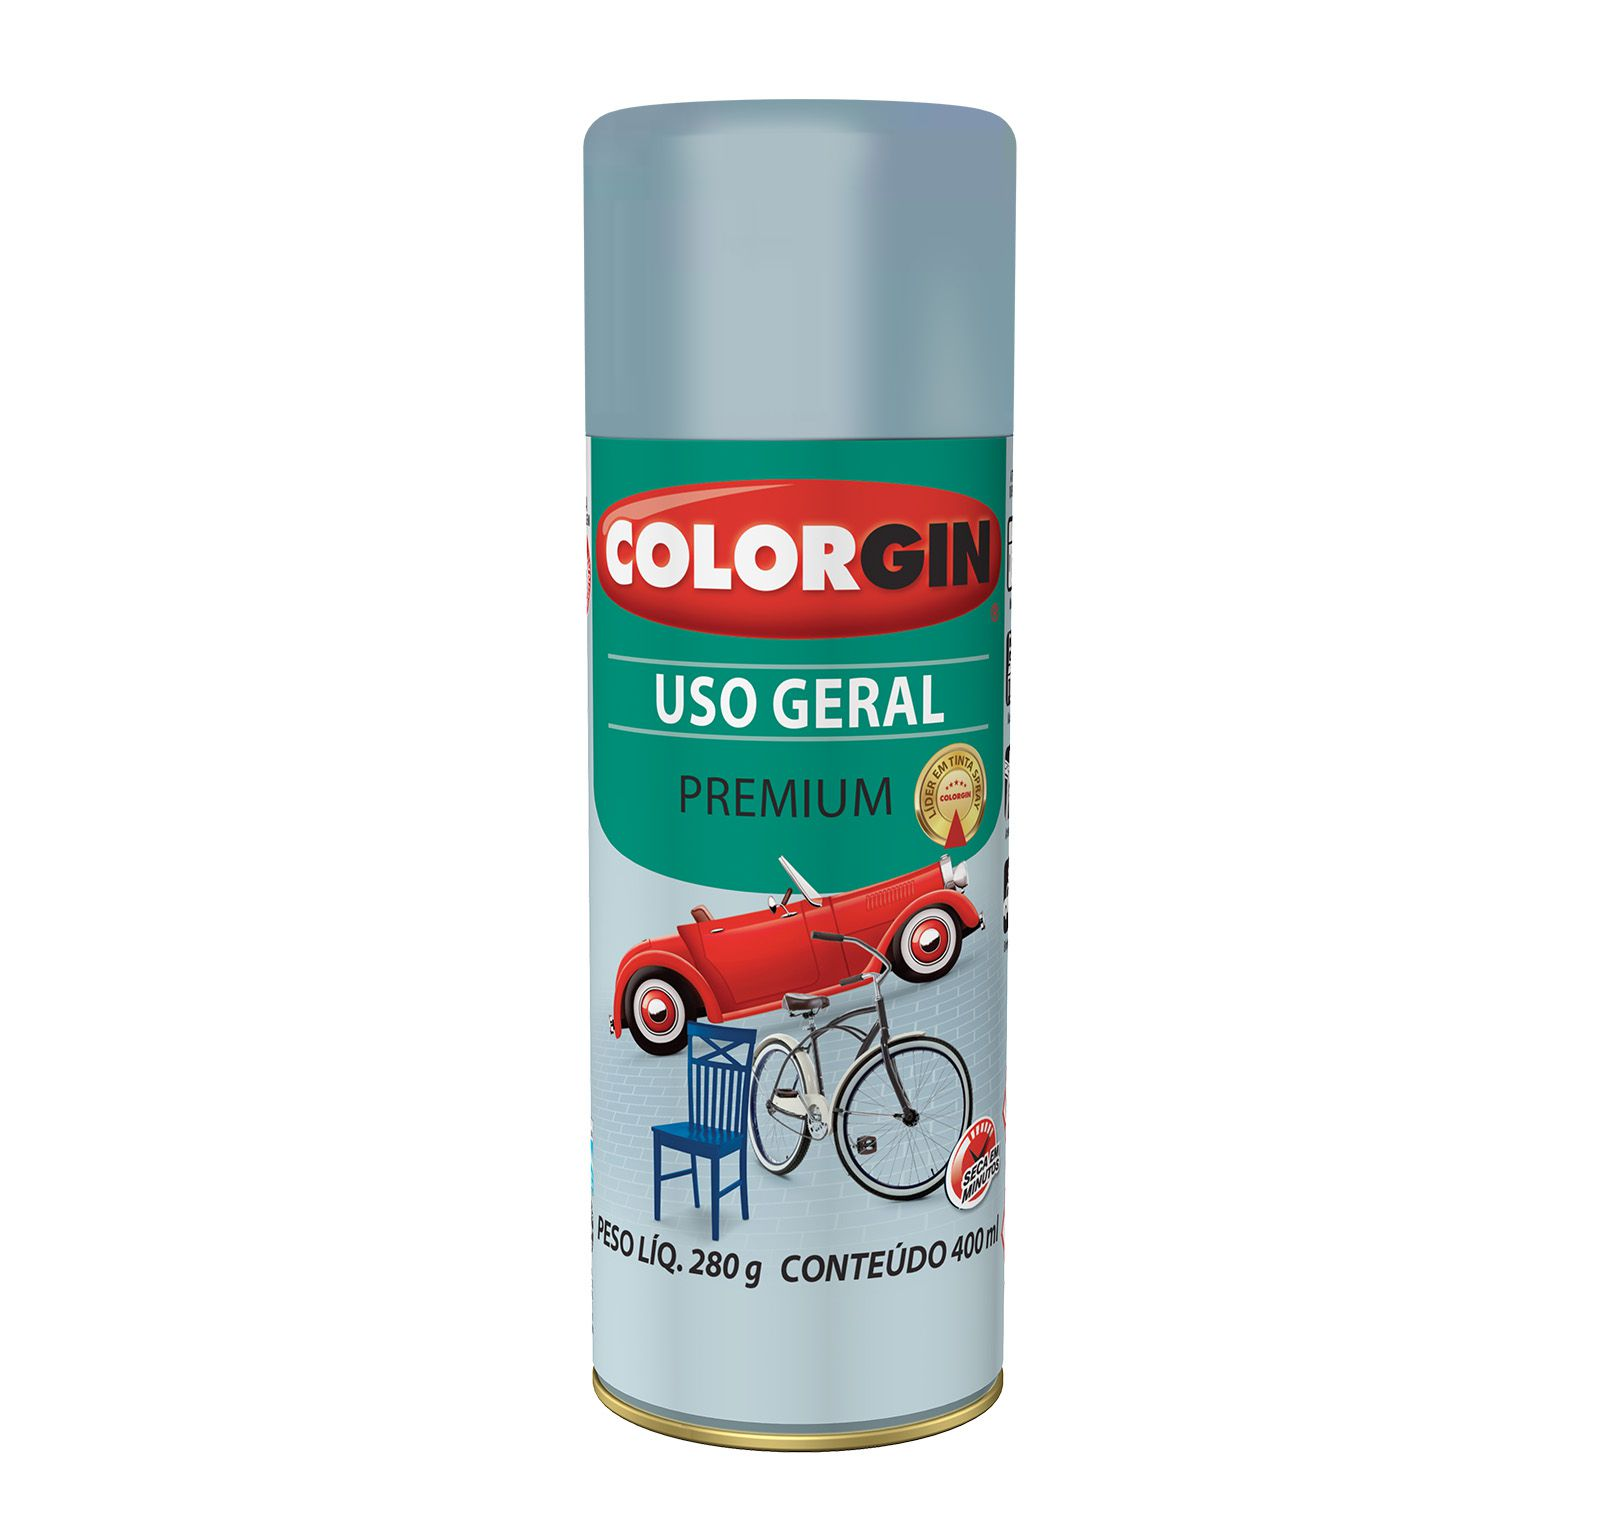 Spray Colorgin Uso Geral Cinza Placa 5504